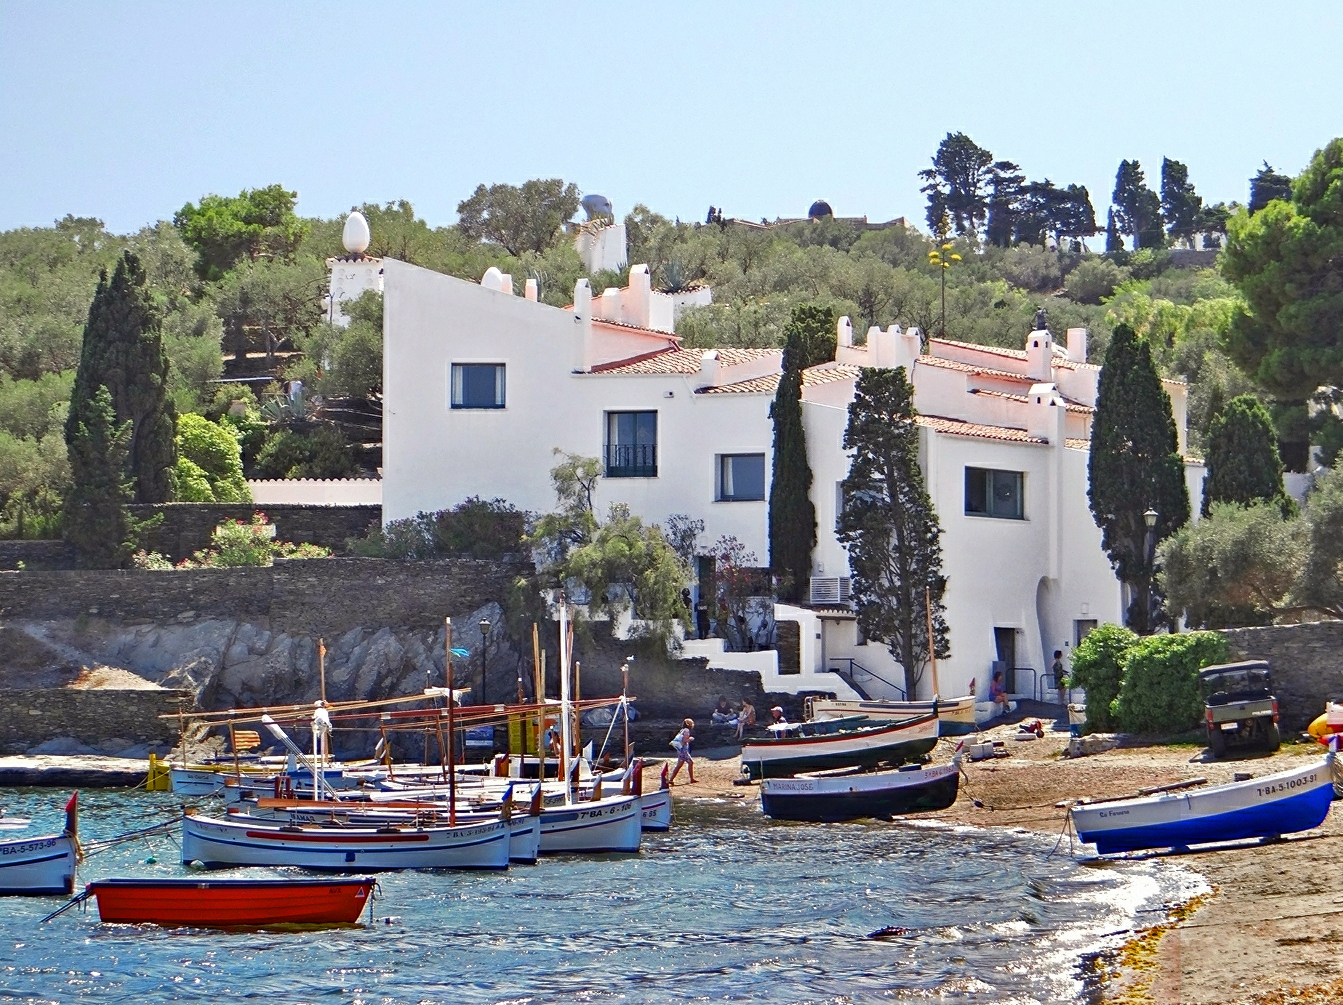 Portlligat, summer home of Salvador Dalí.